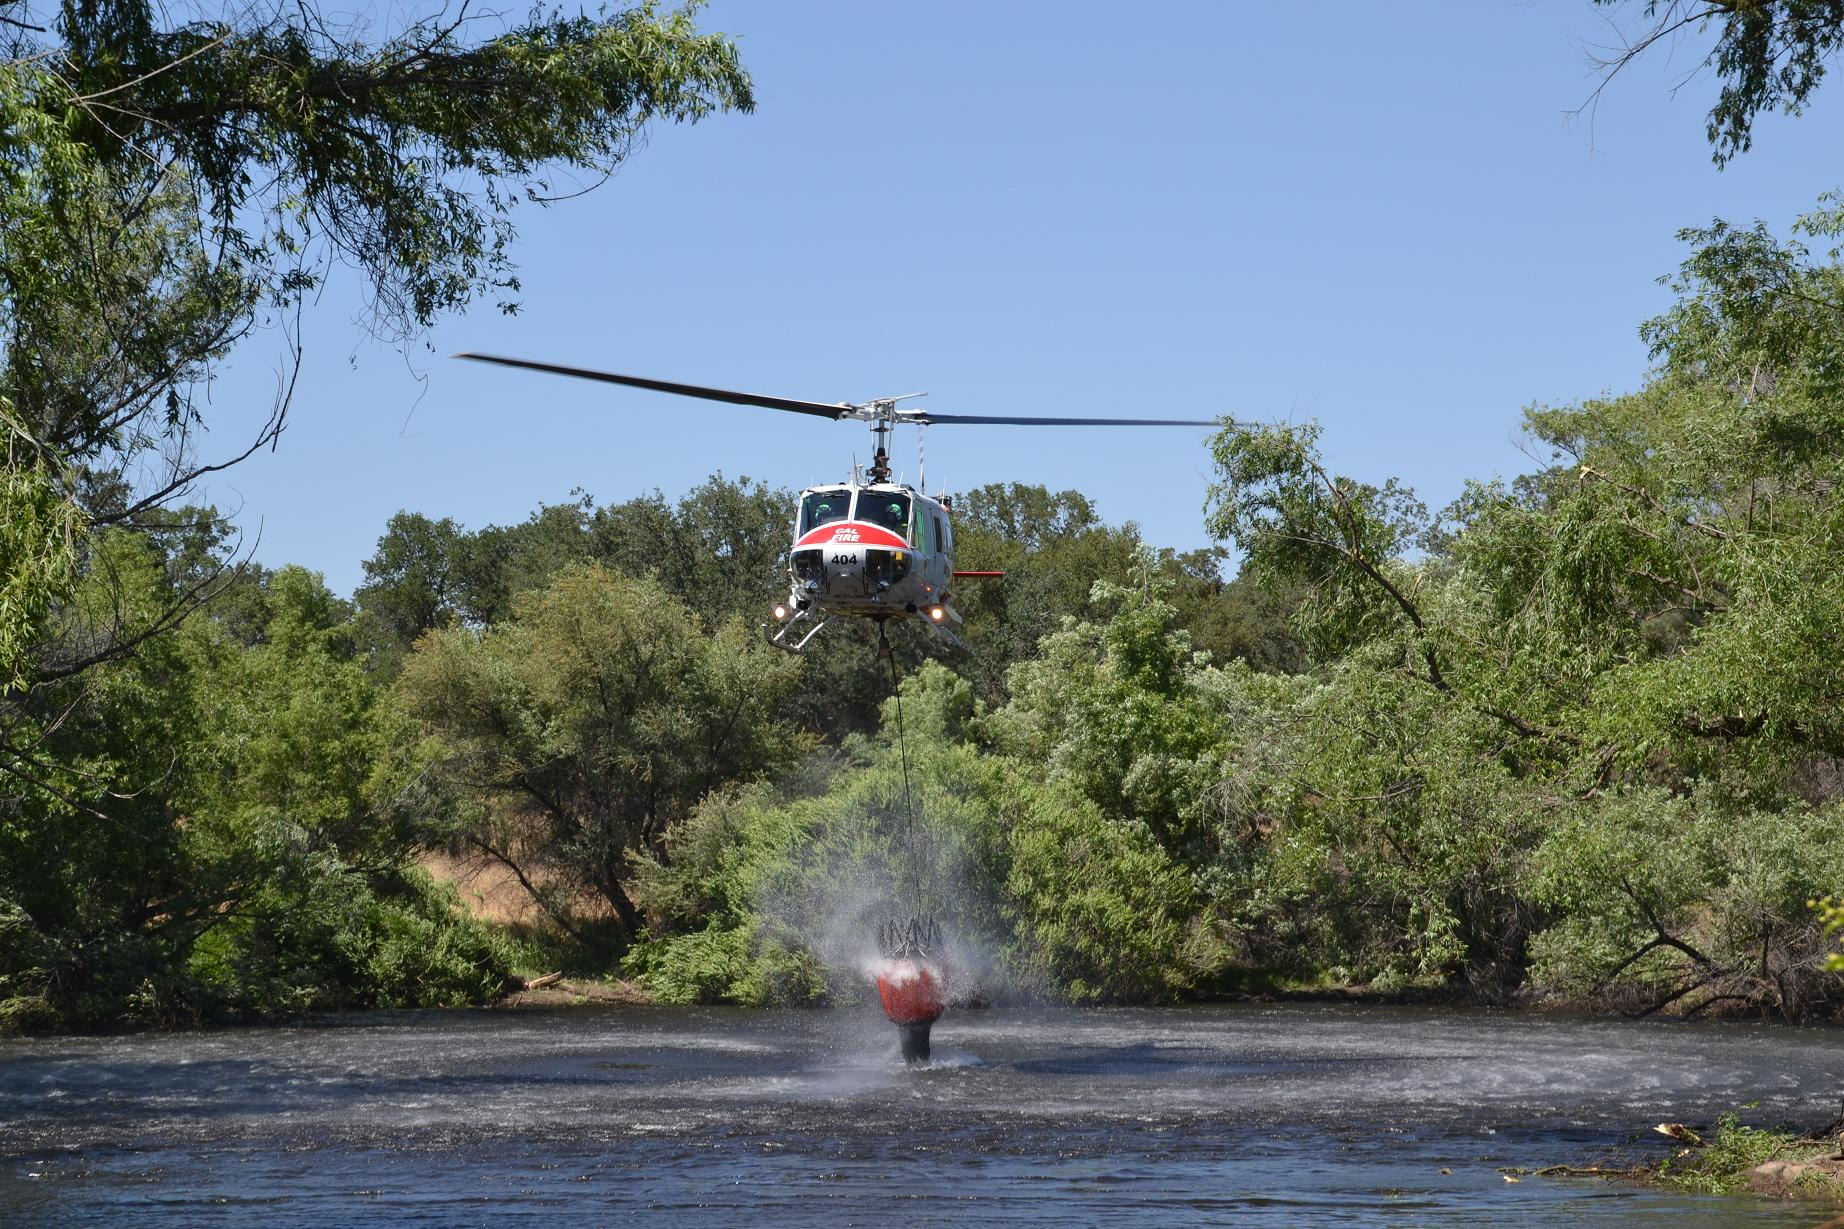 Water sprays as helicopter loads photo by Gina Clugston